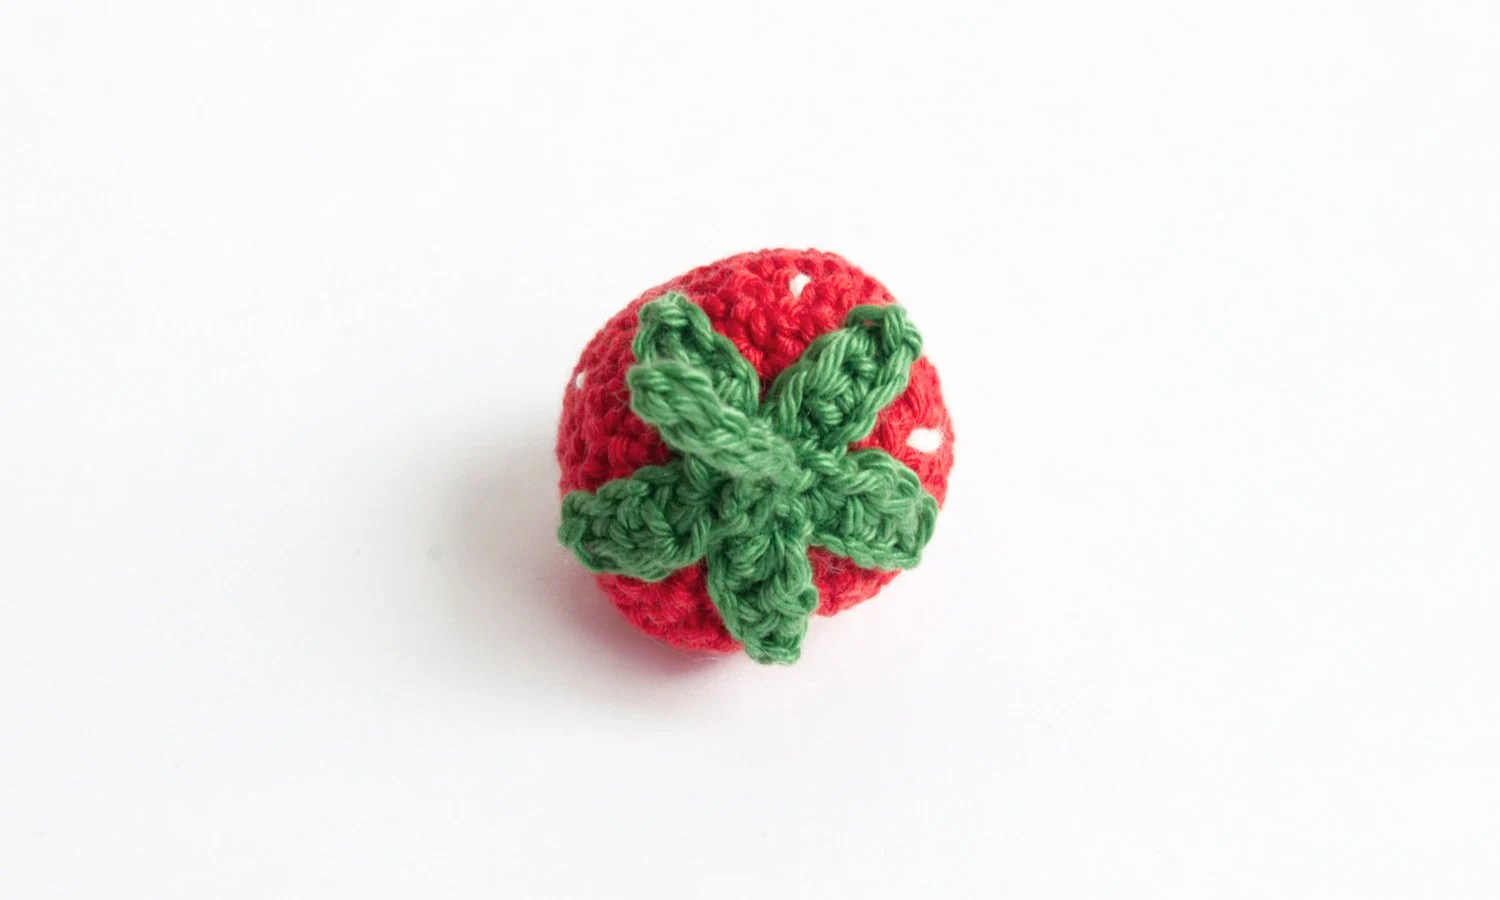 Strawberry crochet image 1